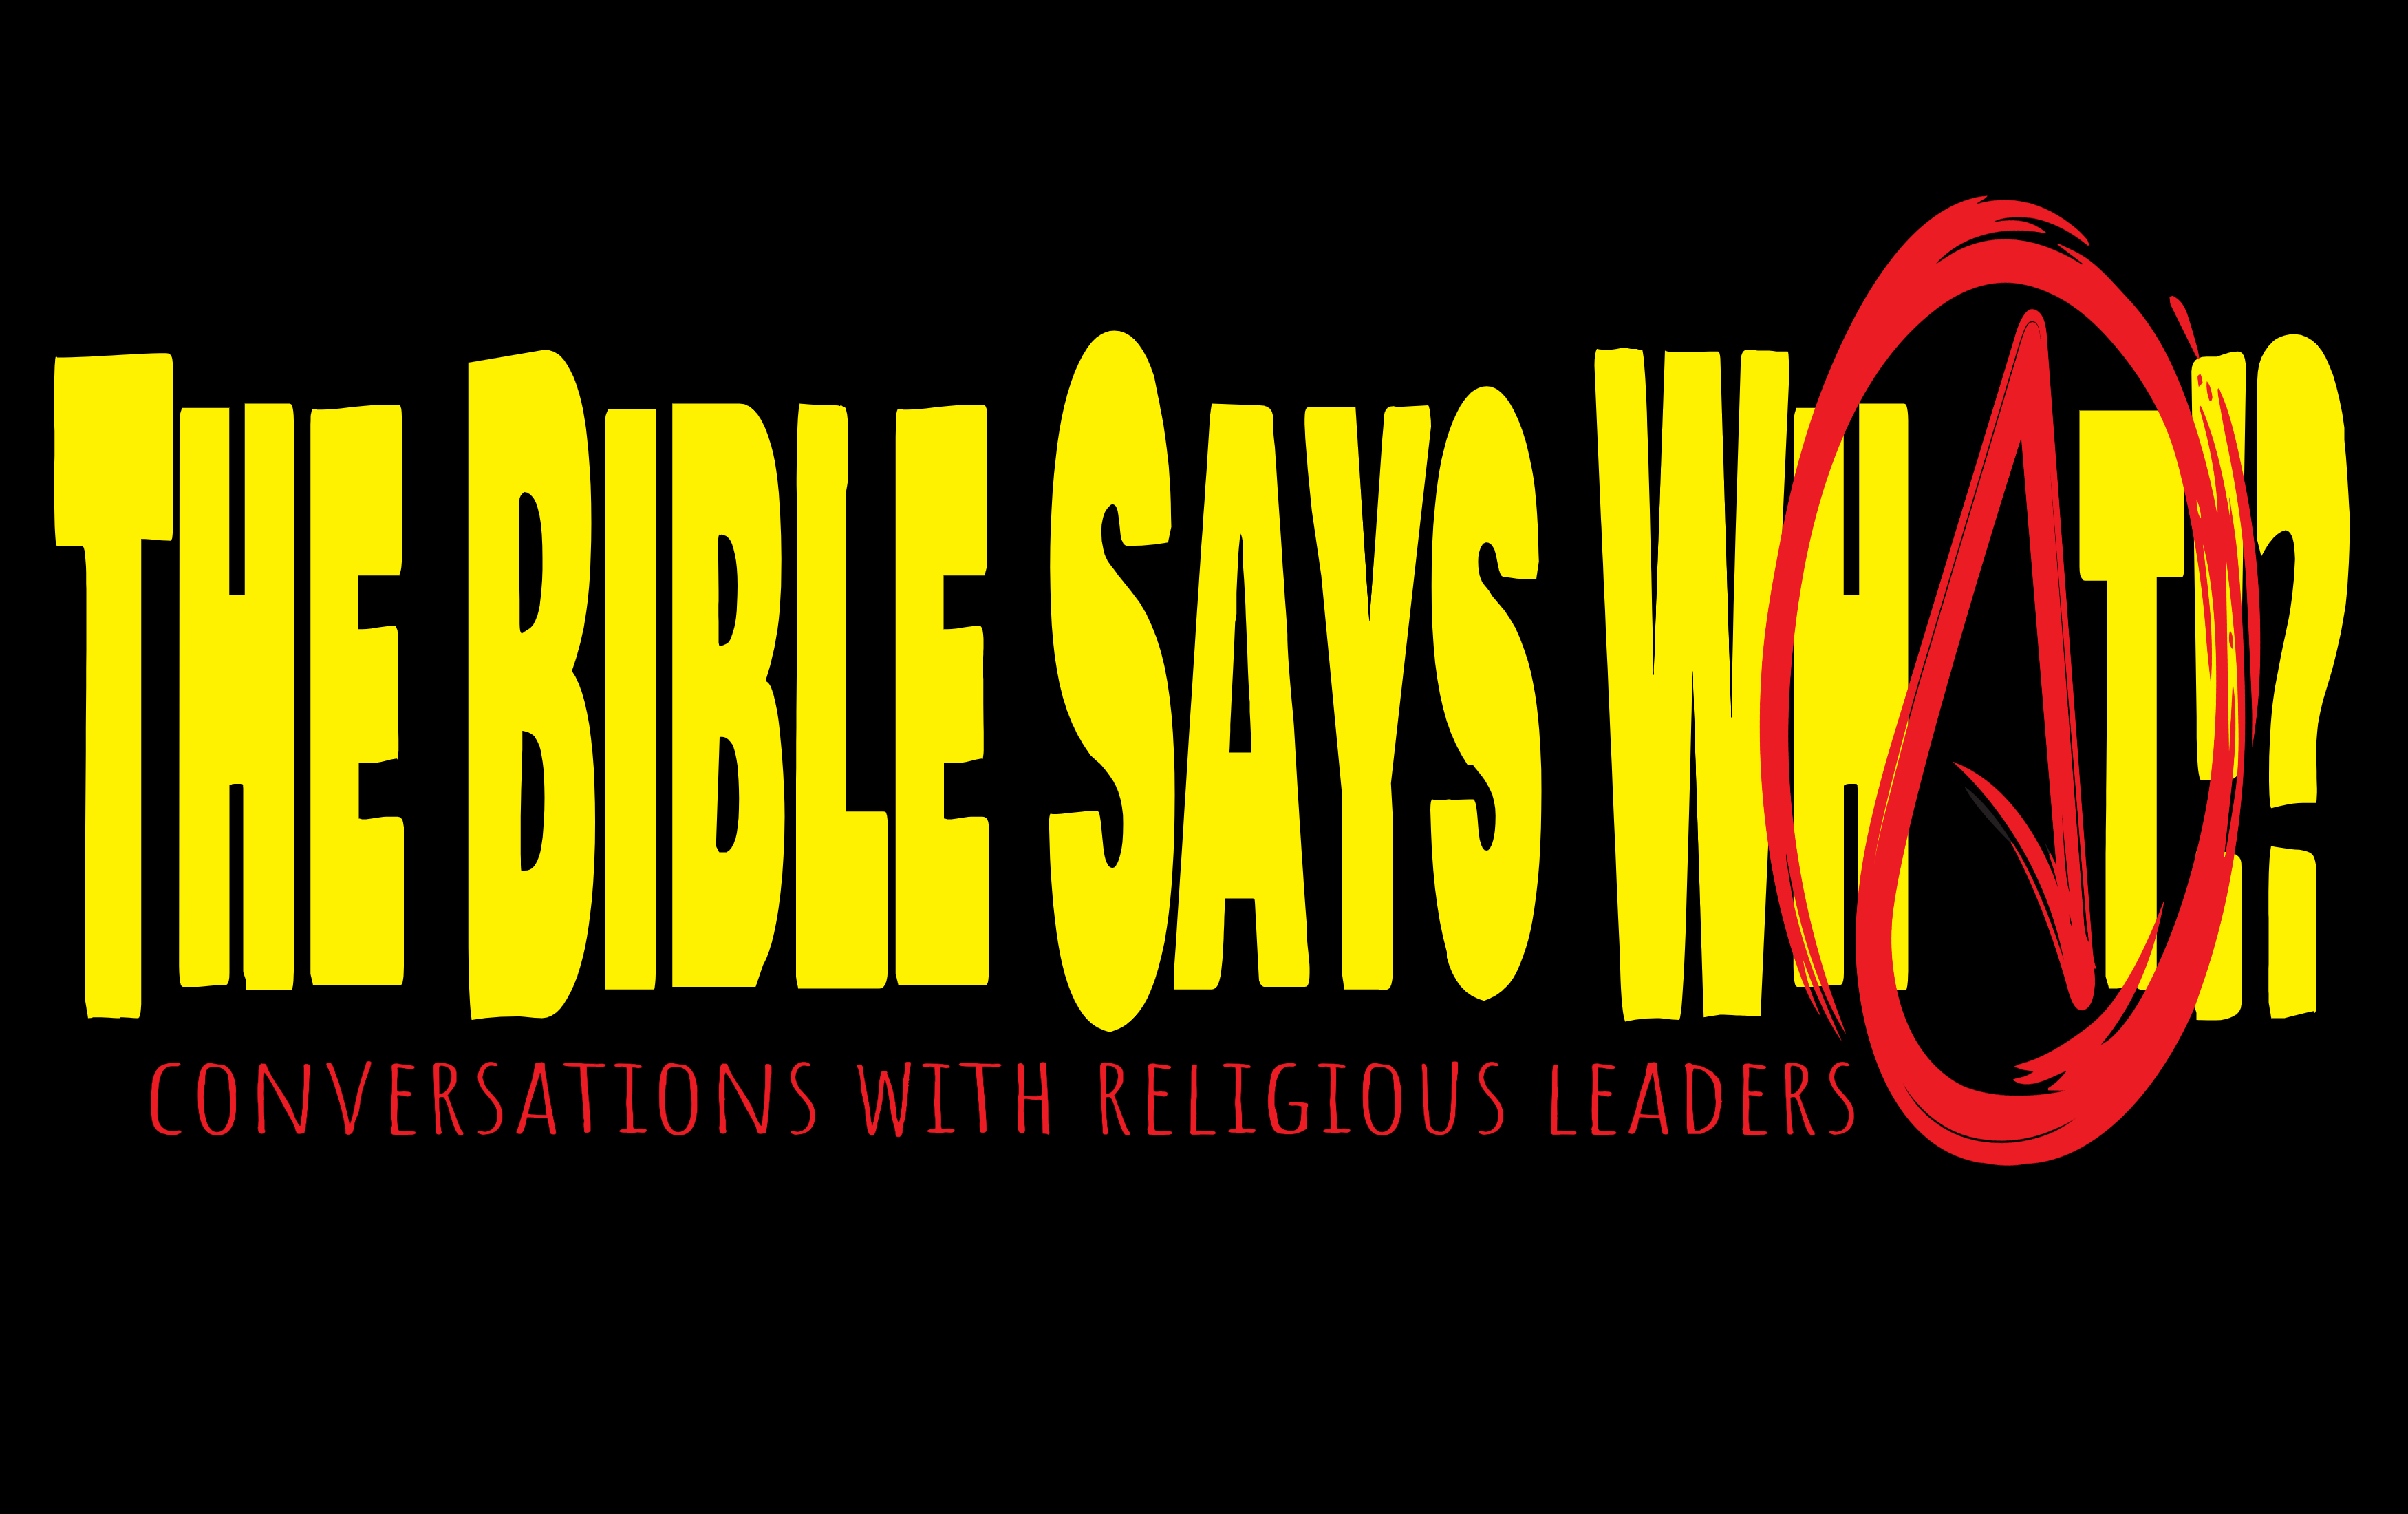 A highlight from The Bible Says What!? Episode 125: Jesus vs George Washington with Peter Olson